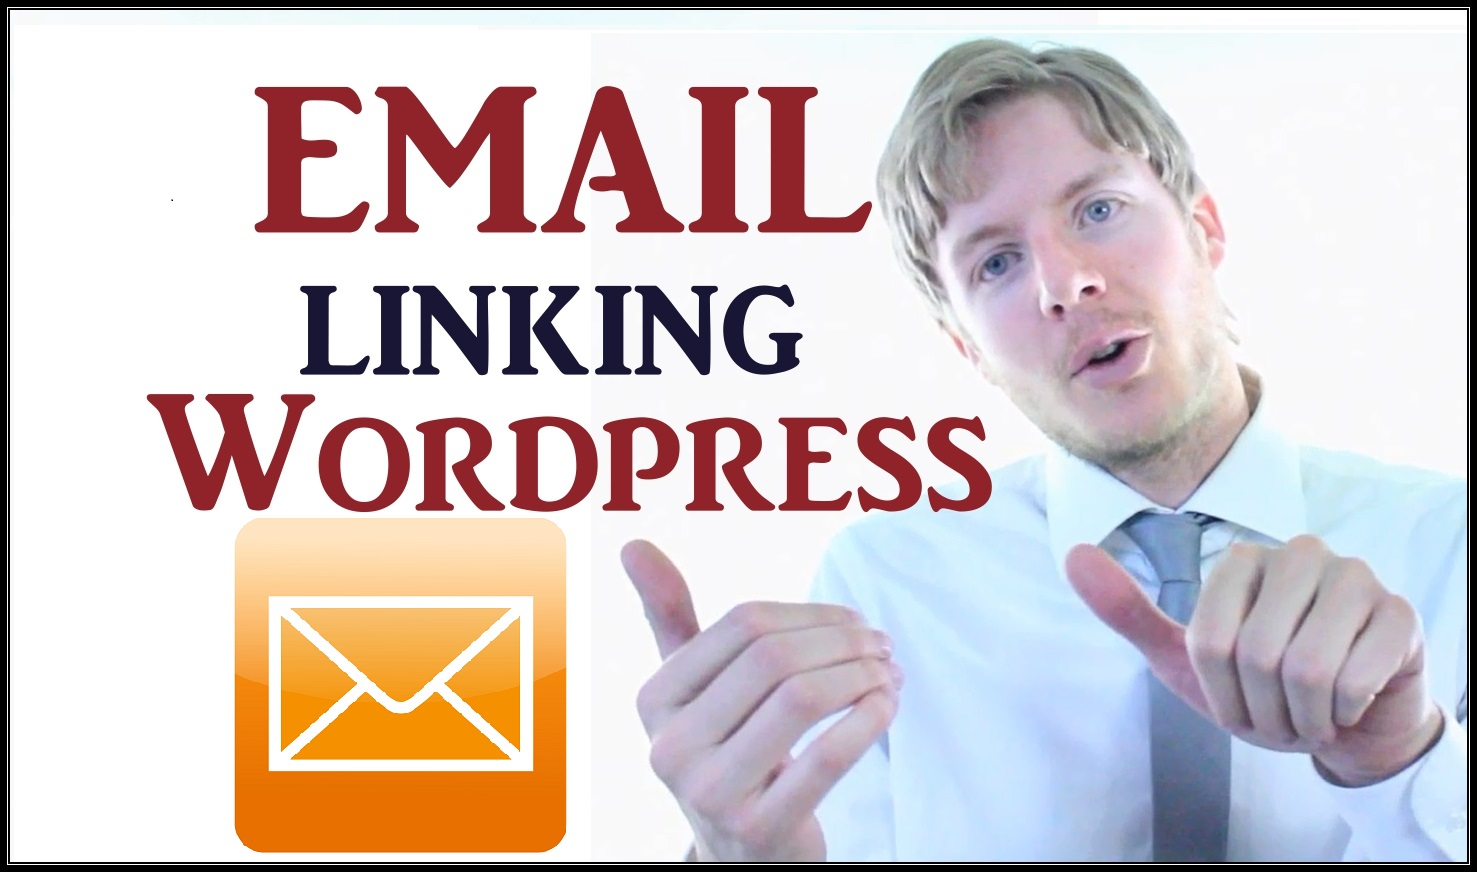 Add link to email wordpress